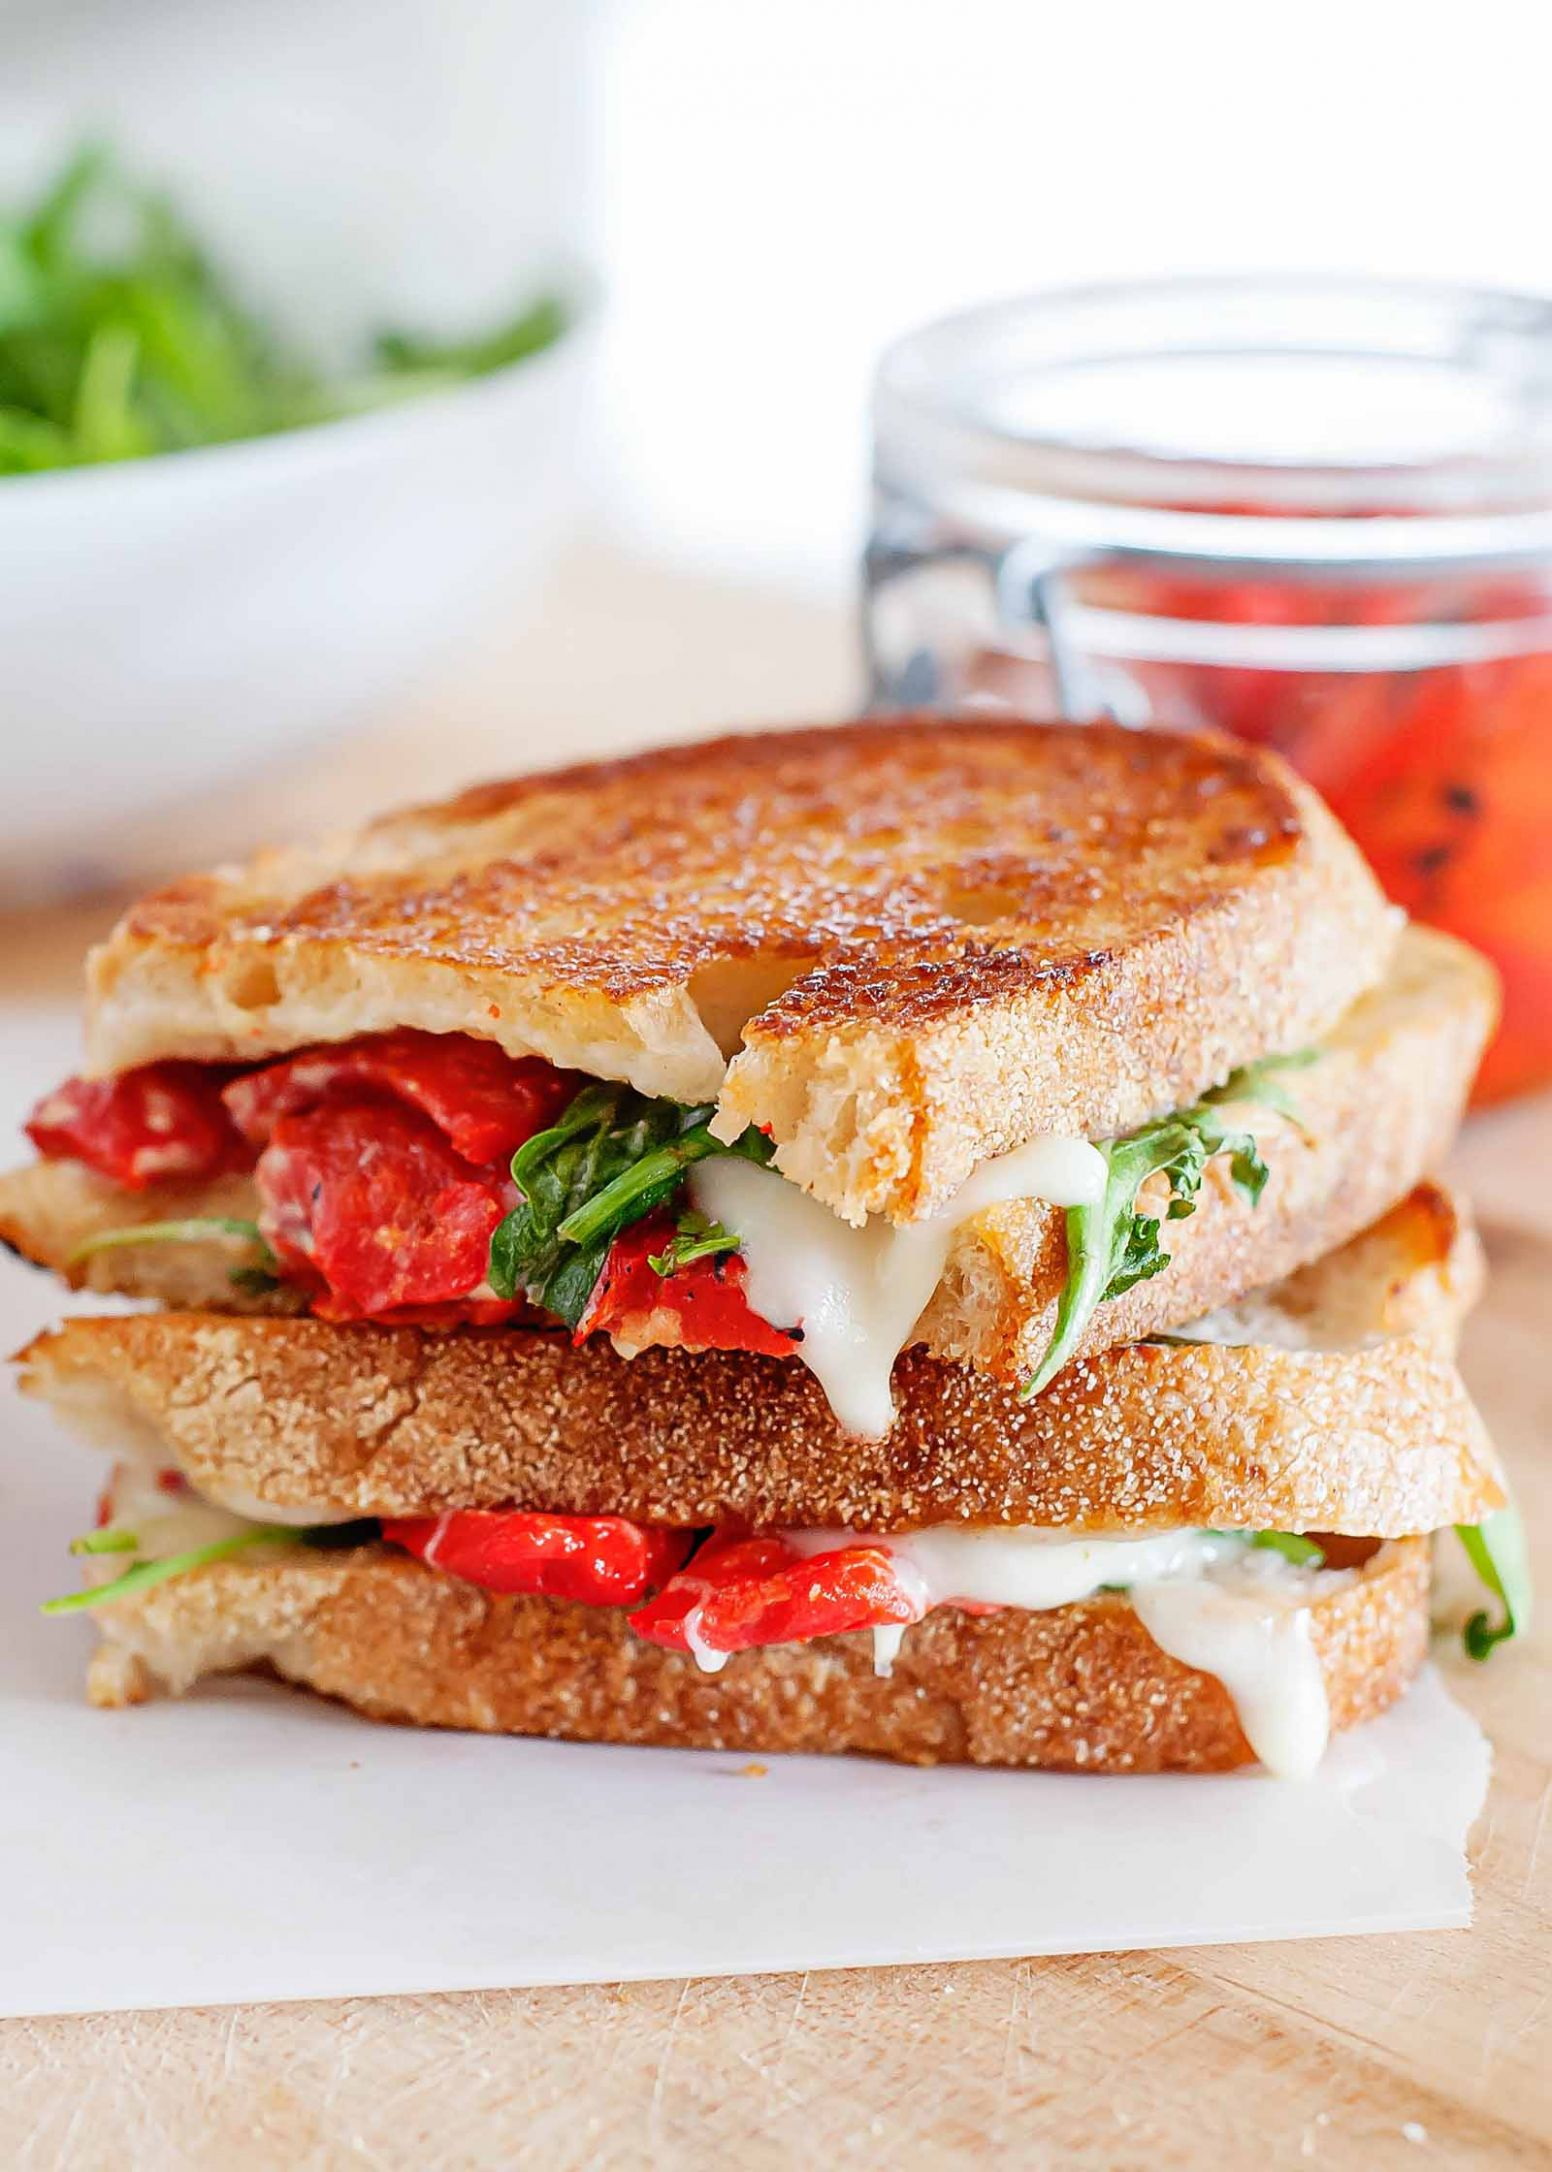 Grilled Cheese Sandwich with Mozzarella, Red Peppers, and Arugula